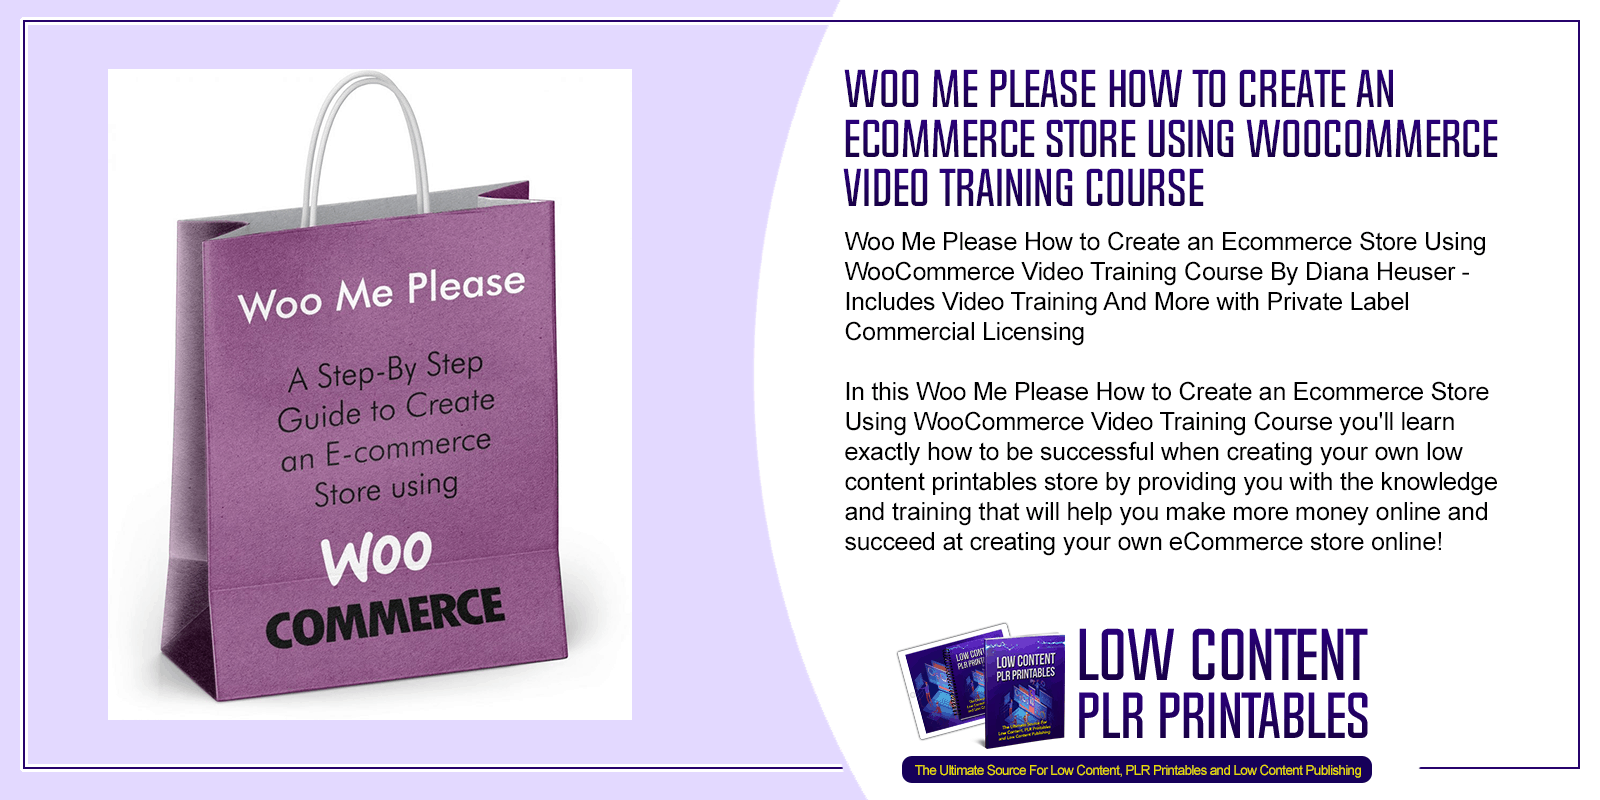 Woo Me Please How to Create an Ecommerce Store Using WooCommerce Video Training Course